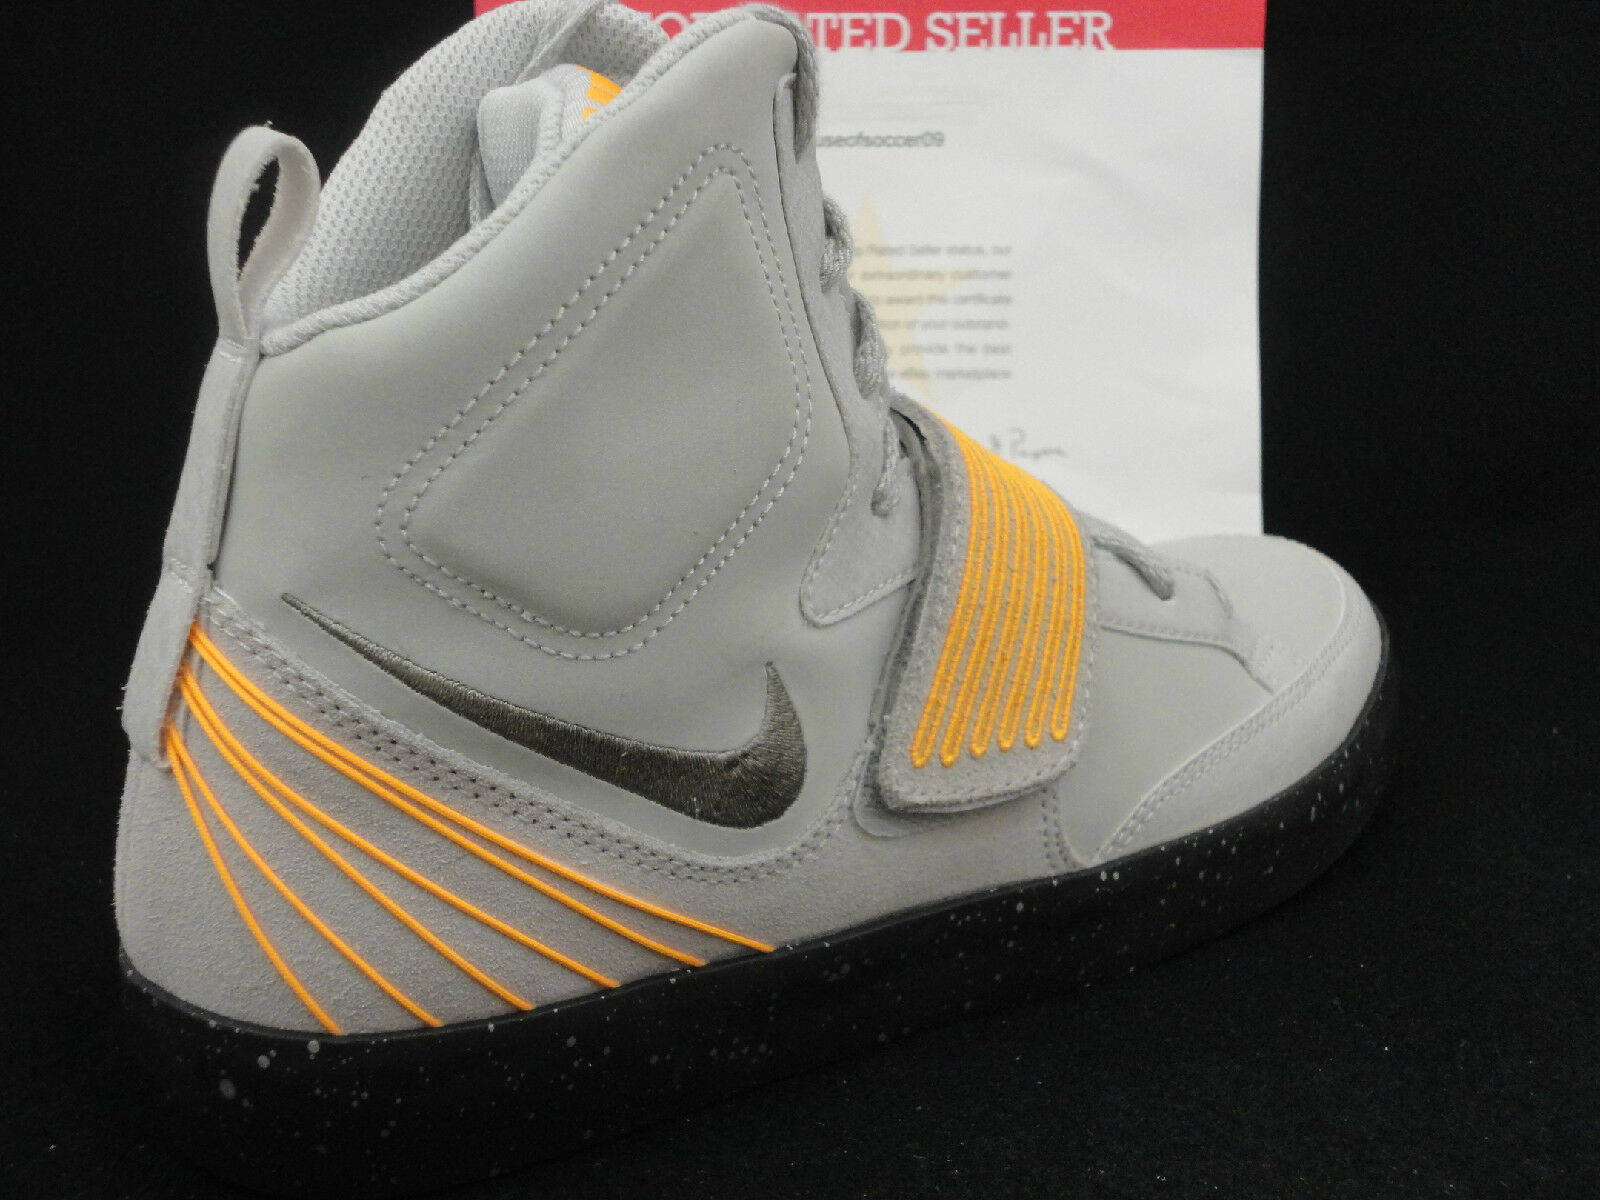 Nike NSW Skystepper, Yeezy Design, Grey   Laser orange Size 11.5